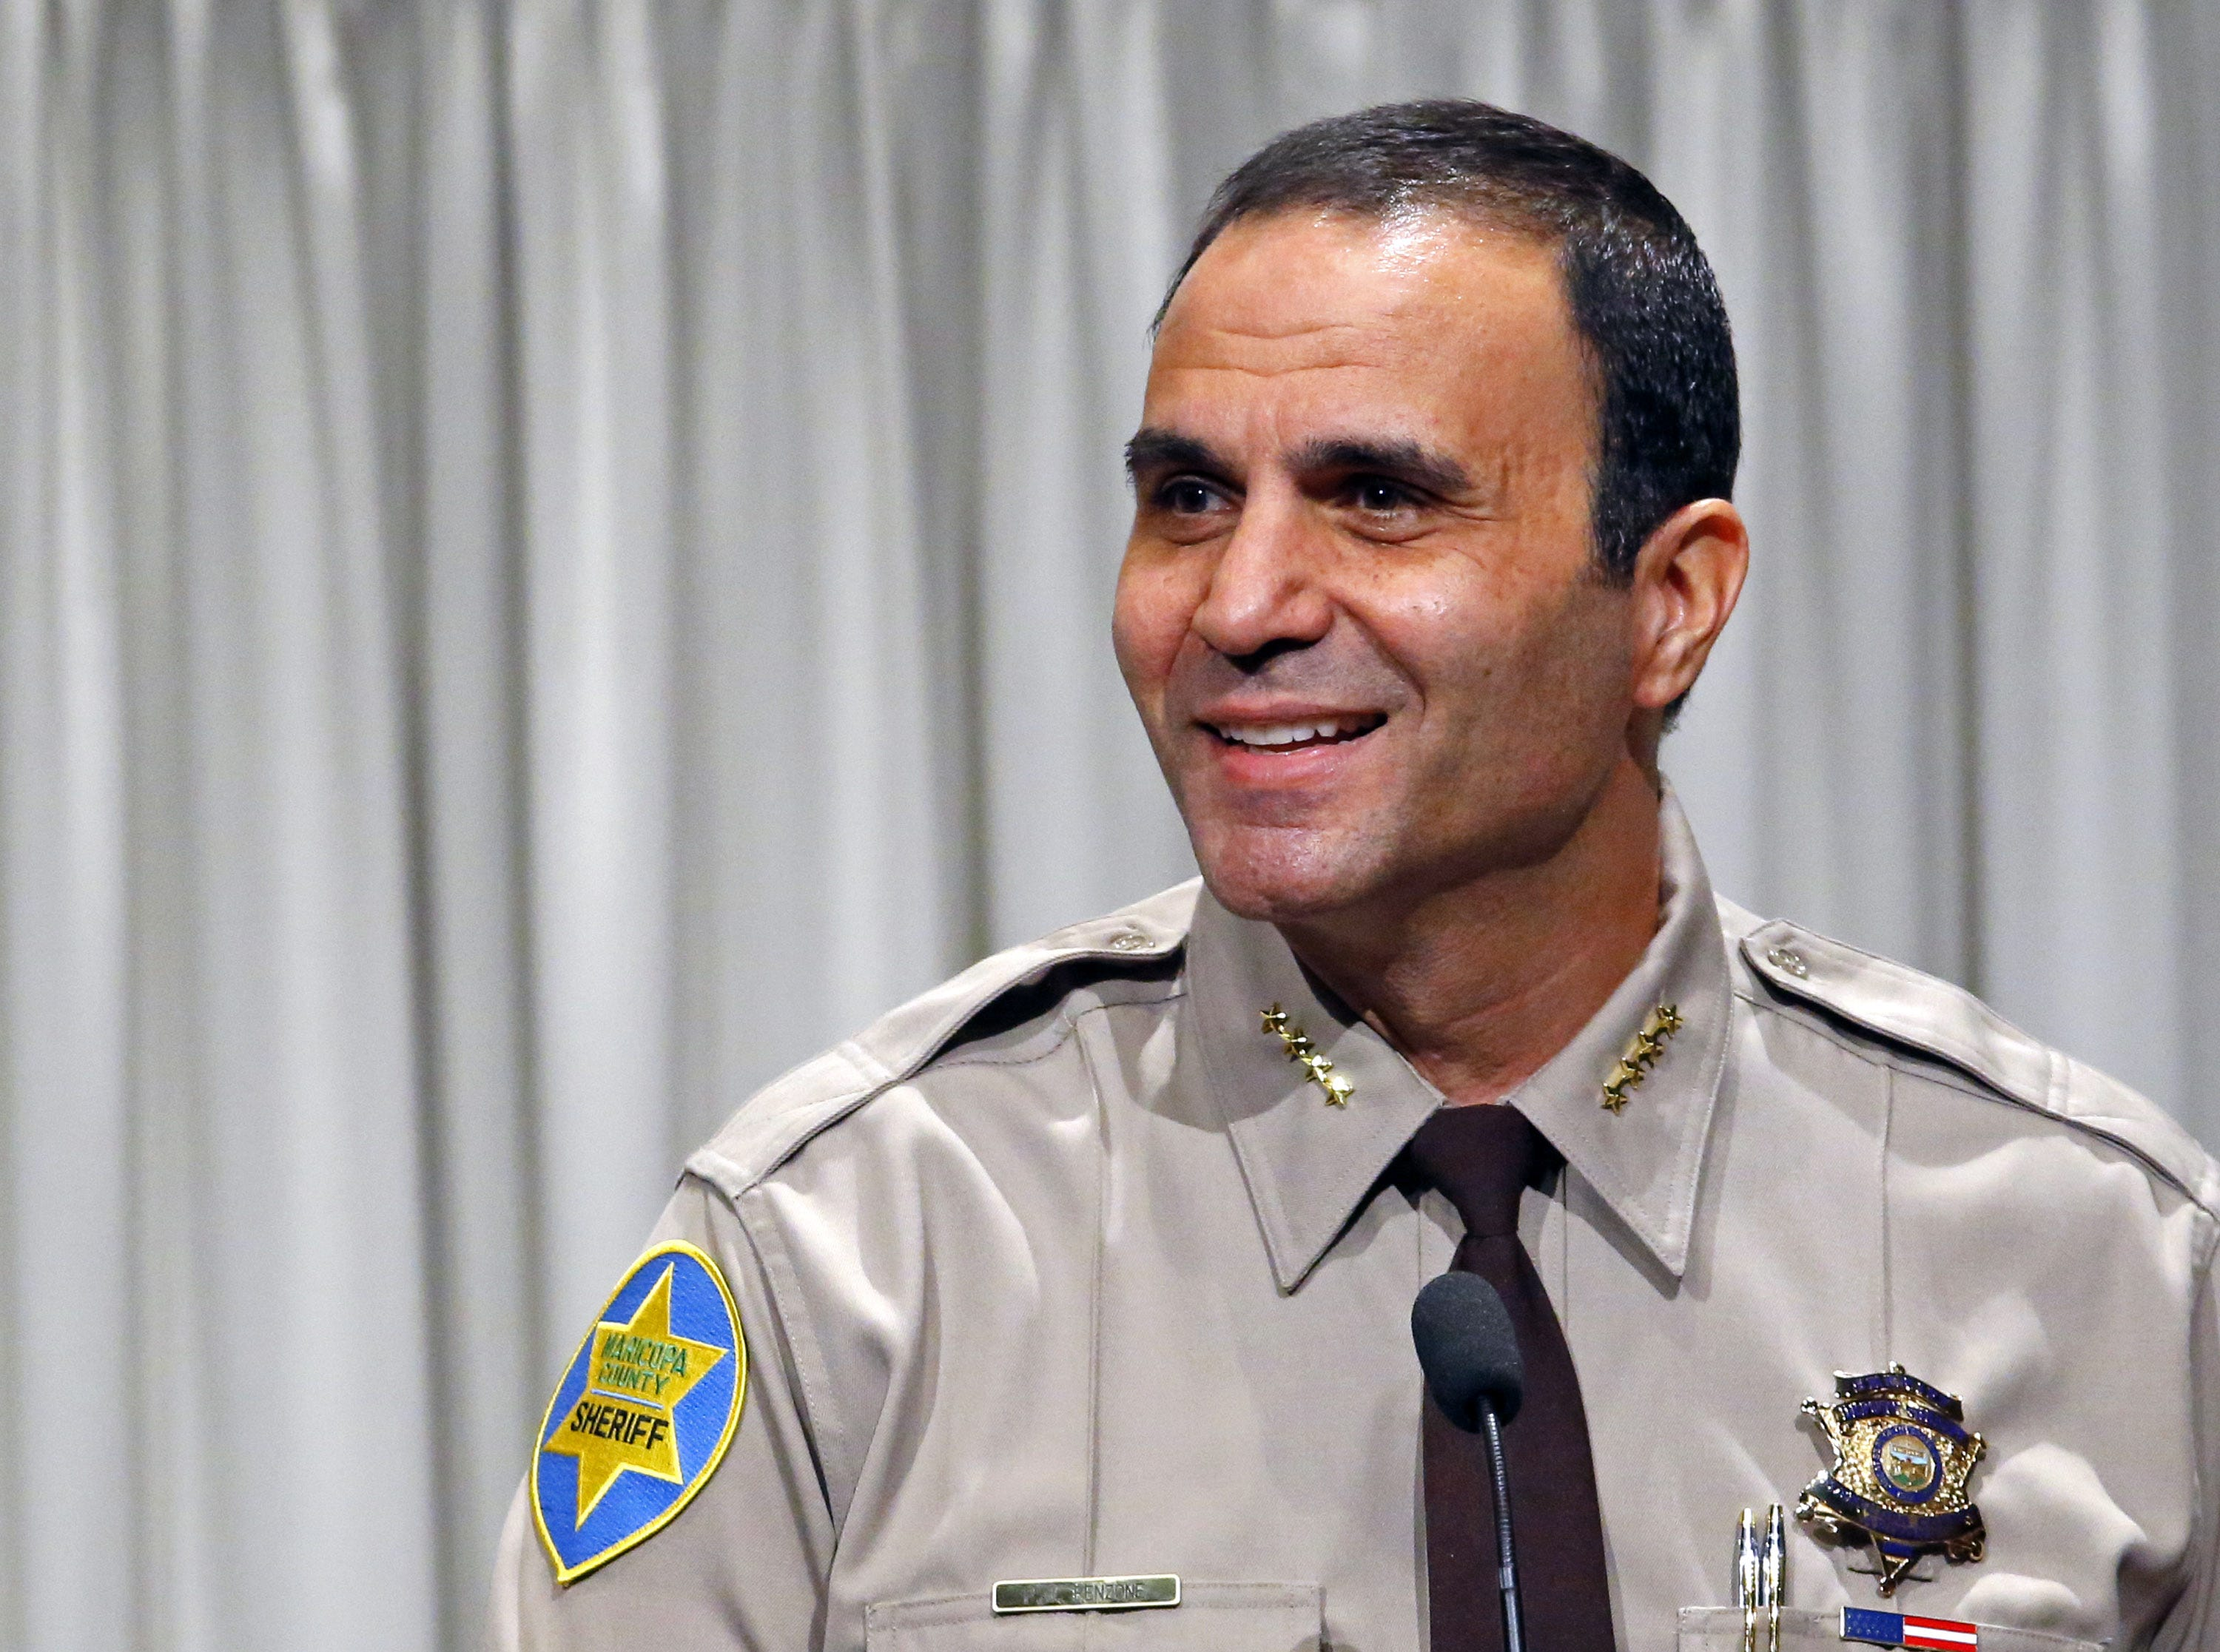 Maricopa County Sheriff's Office wrestles with bias amid ...